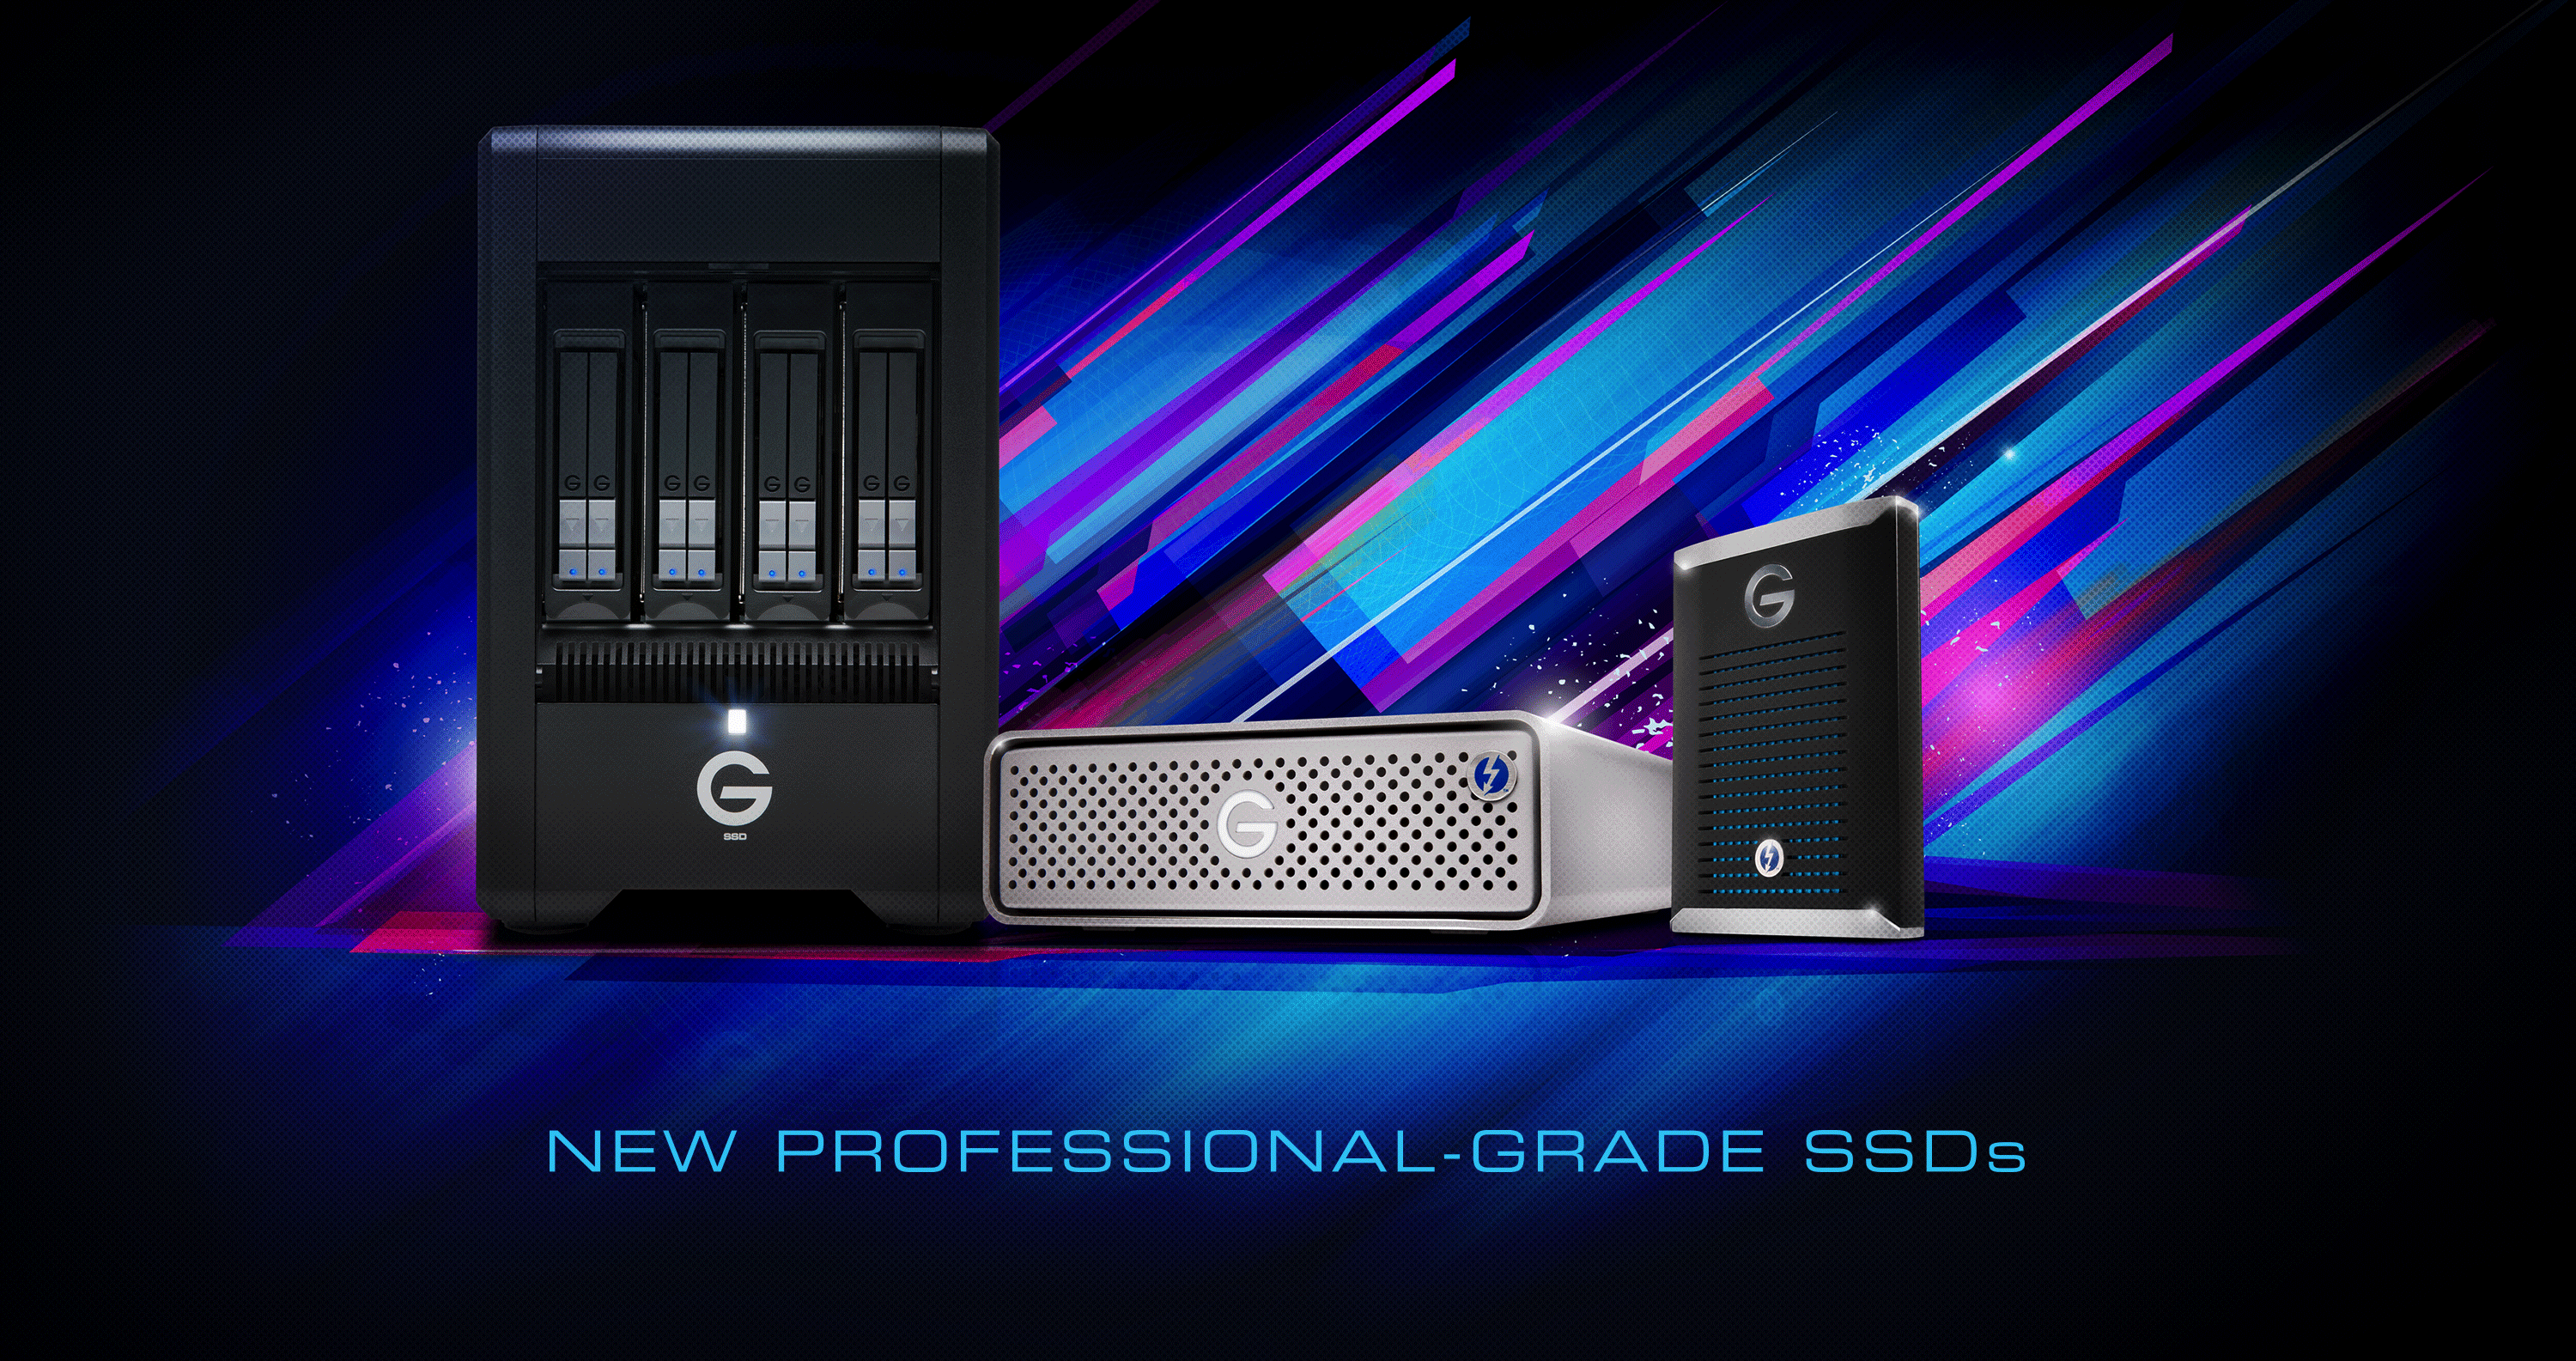 Western Digital debuts new G-Drive and G-Speed professional